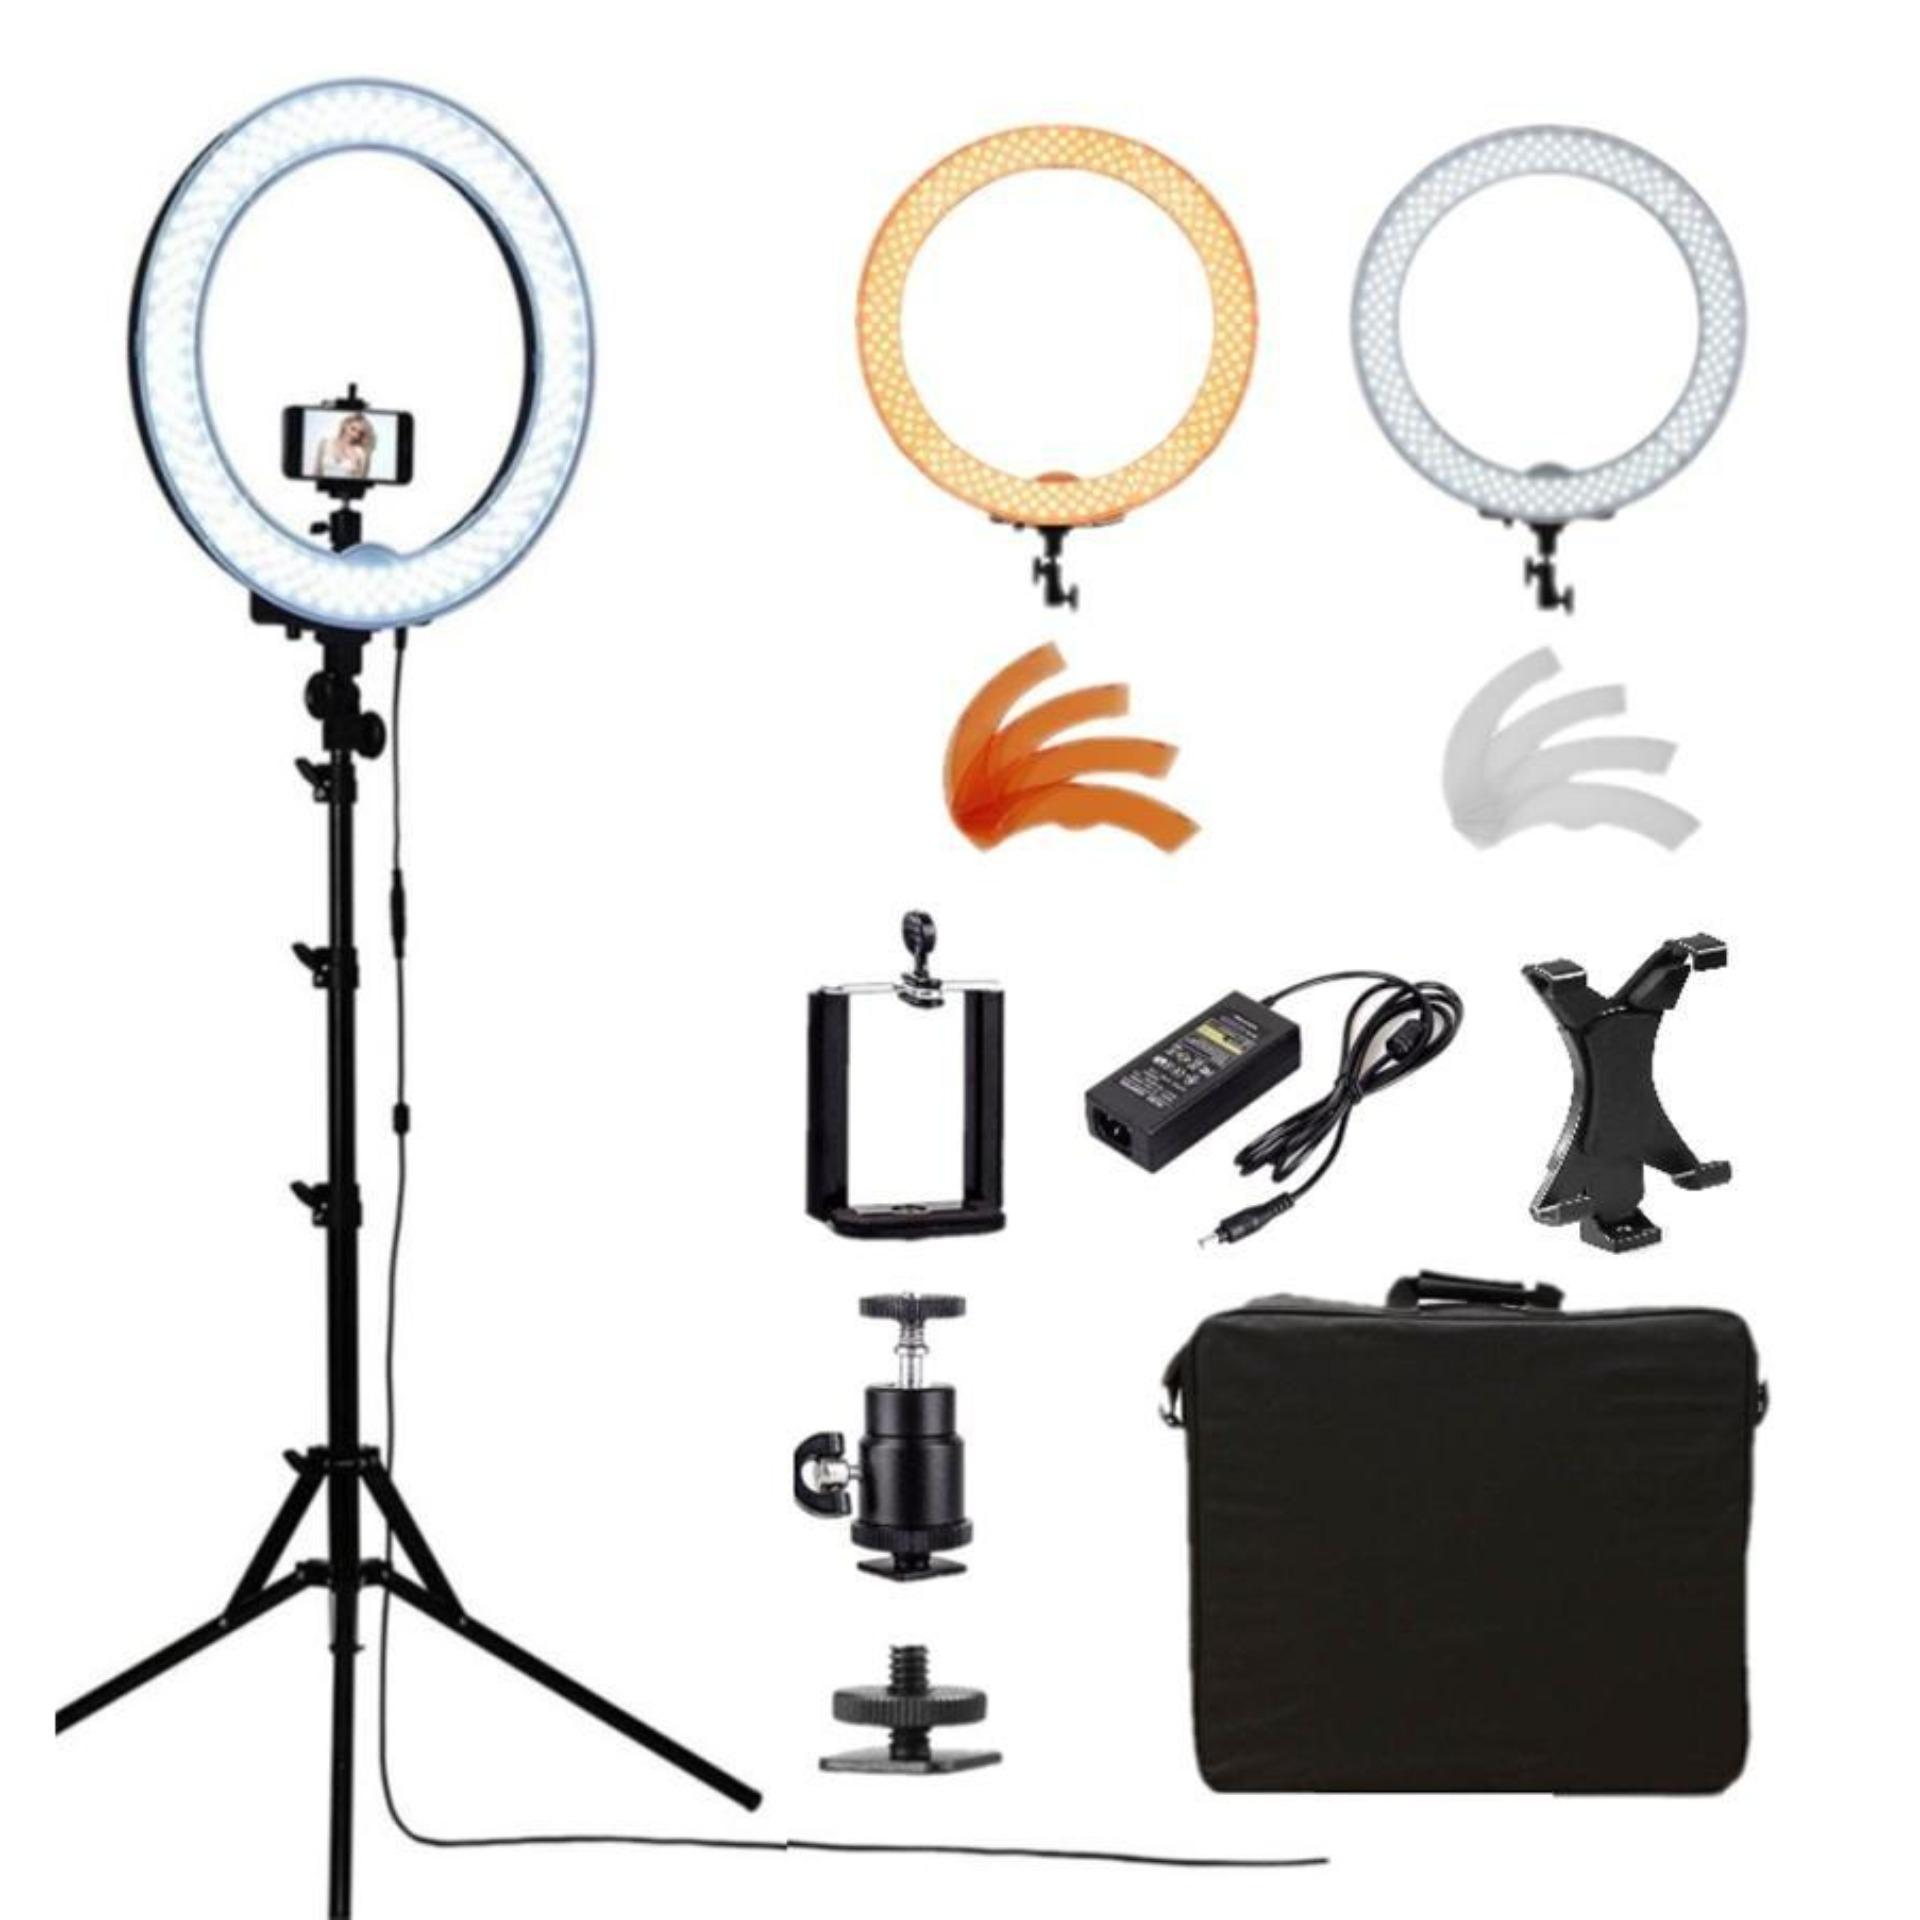 "Meking Dimmable 14"" LED Ring Light Photography Beauty Lighting with Light Stand Tripod Set"